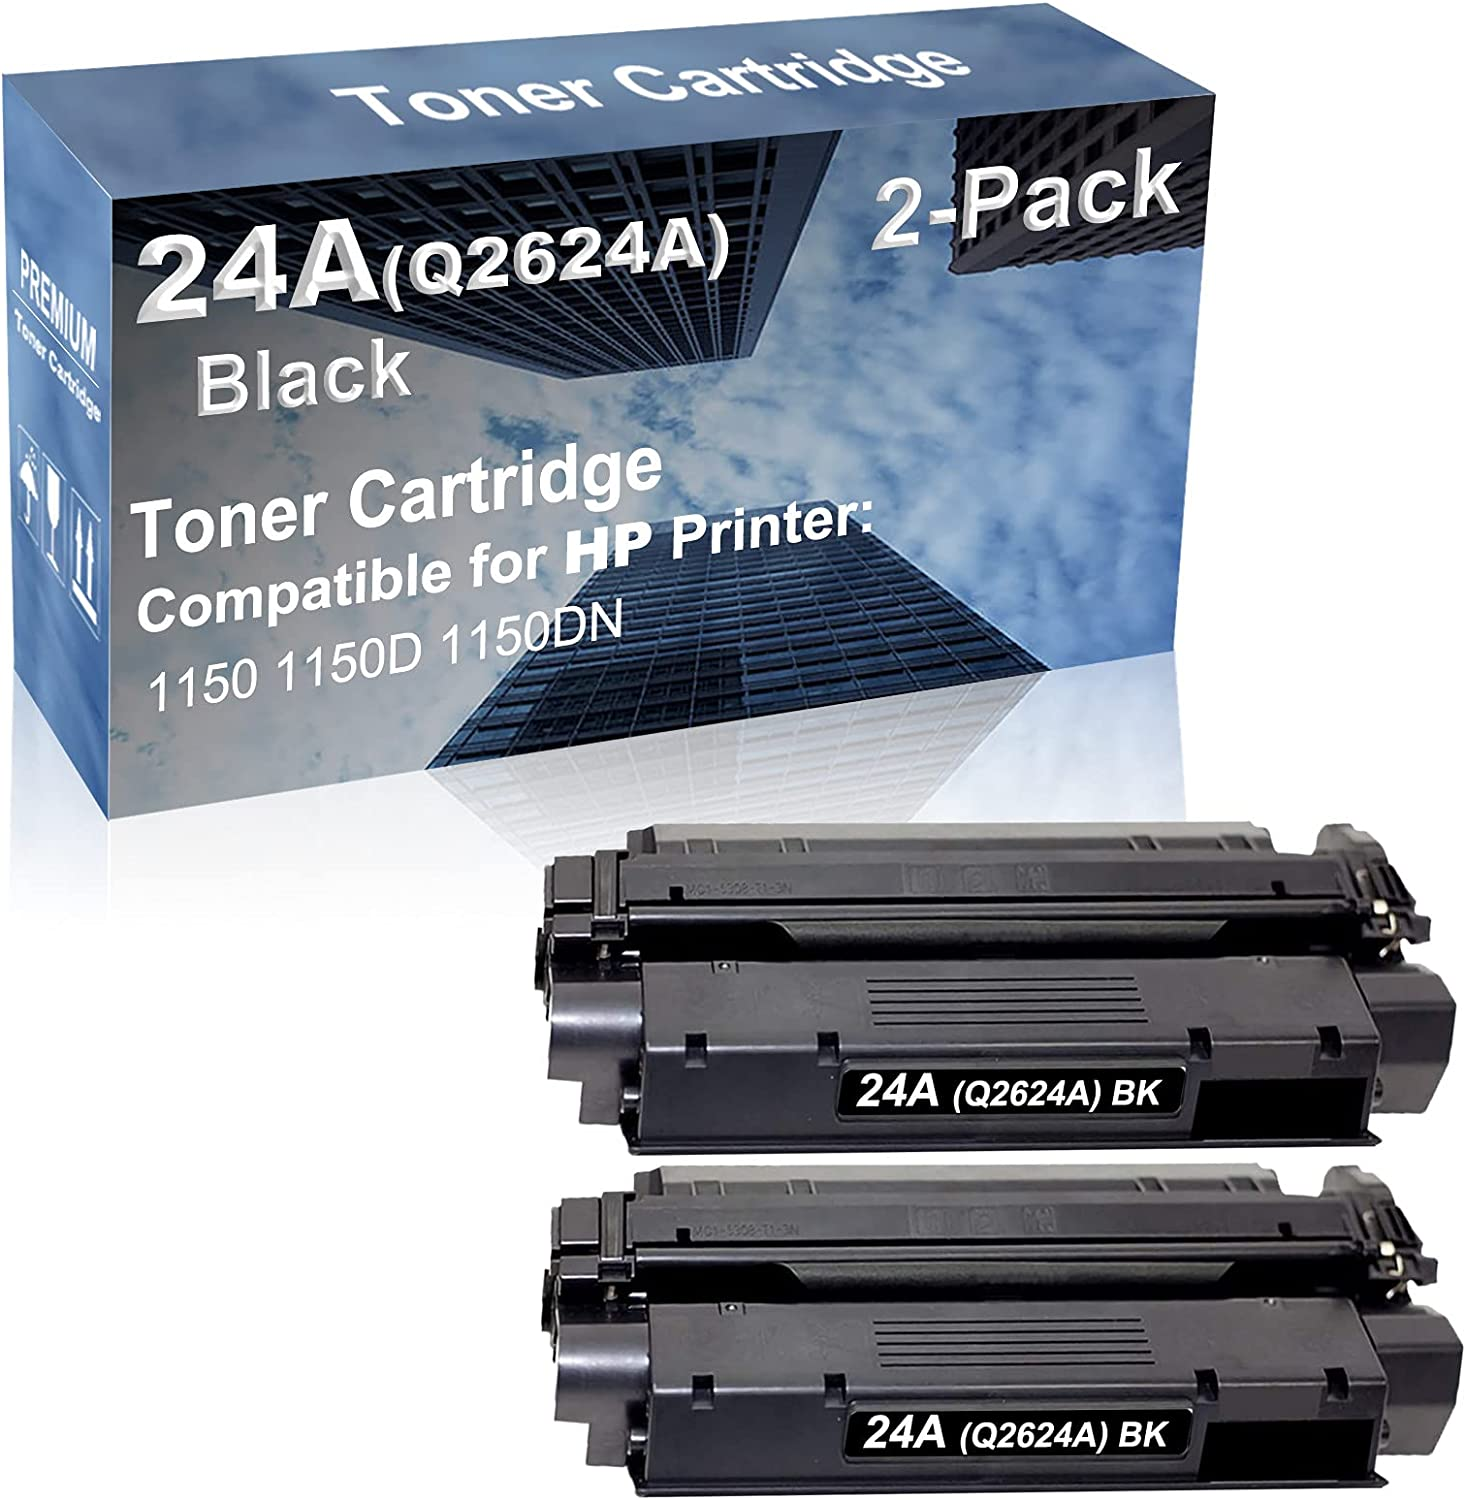 2-Pack Compatible High Capacity 24A (Q2624A) Imaging Toner Cartridge use for HP 1150 1150D 1150DN Printer (Black)